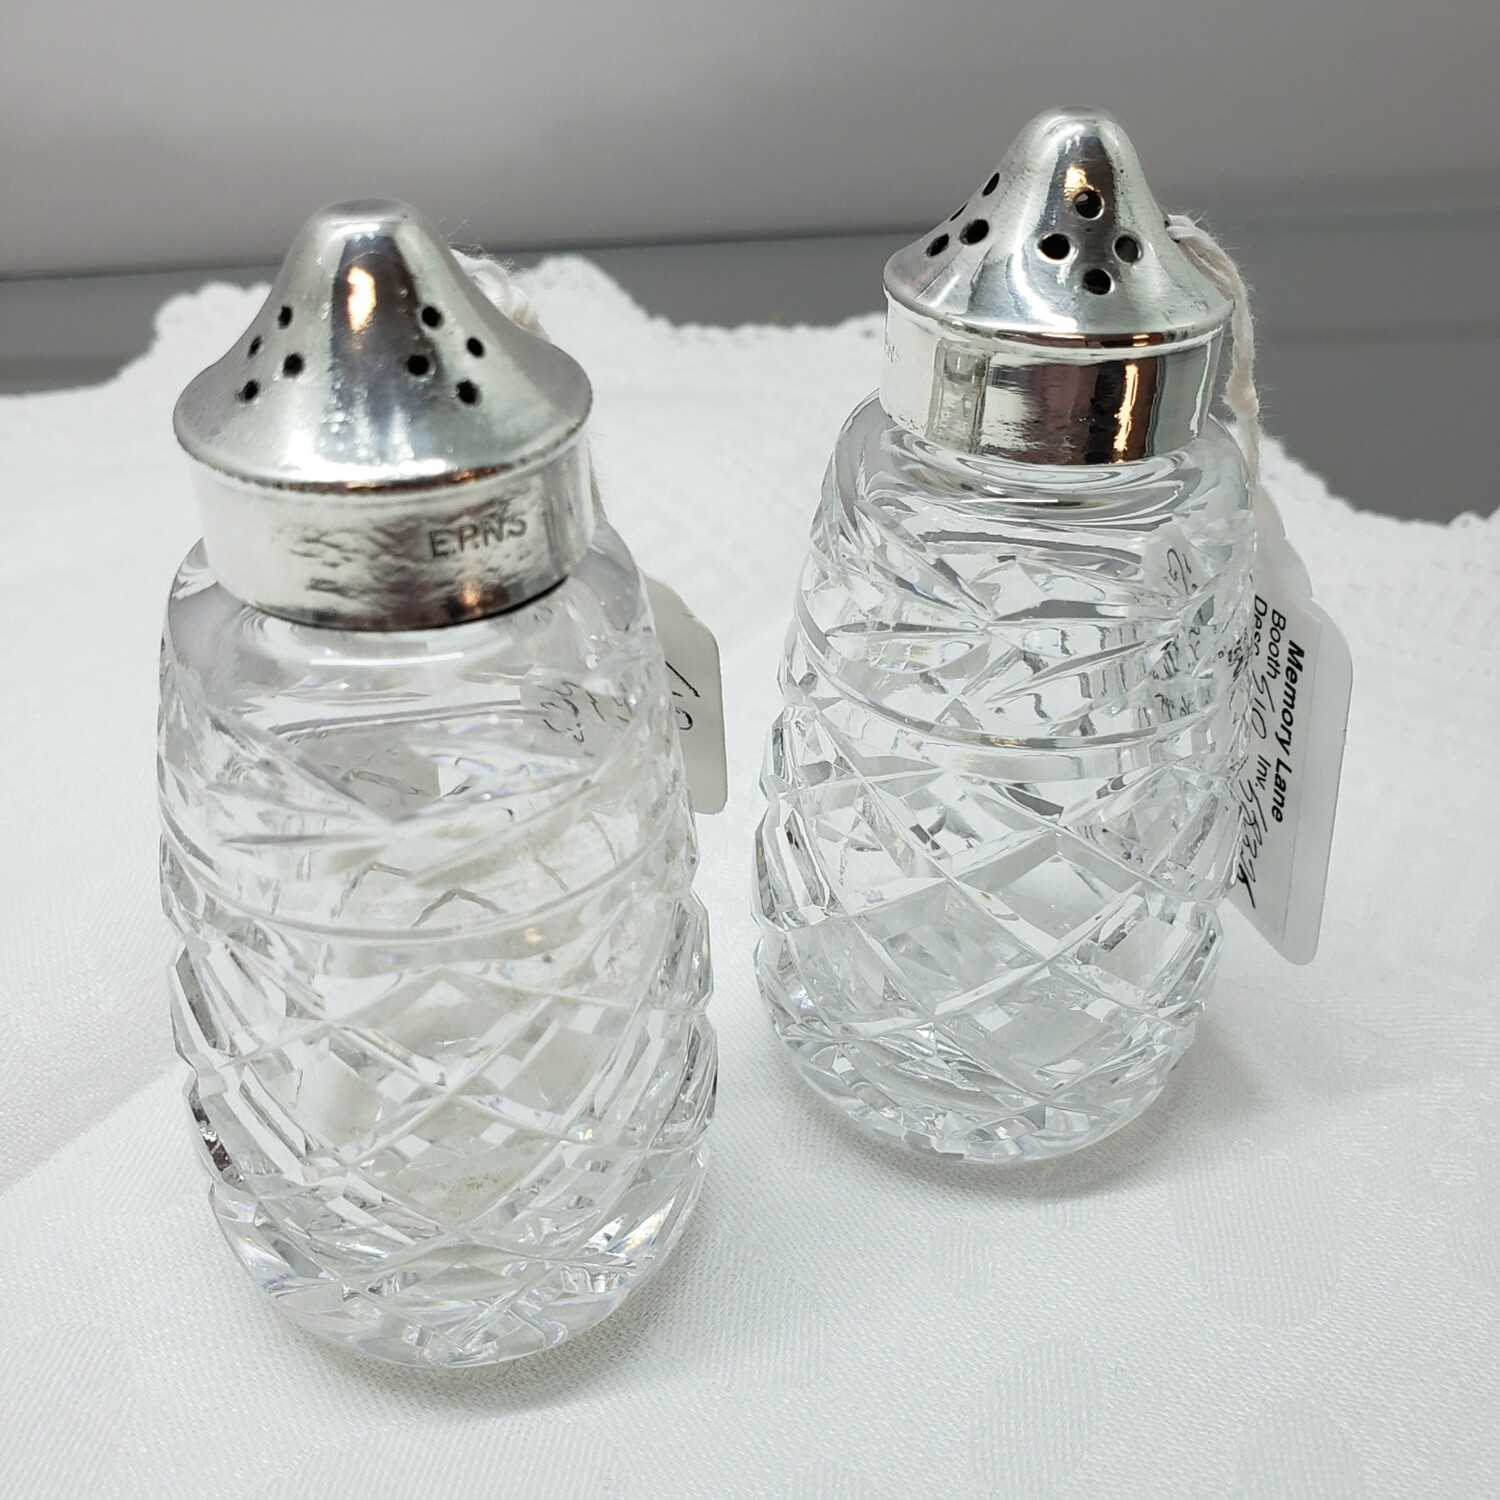 Waterford Glendore salt and pepper shakers